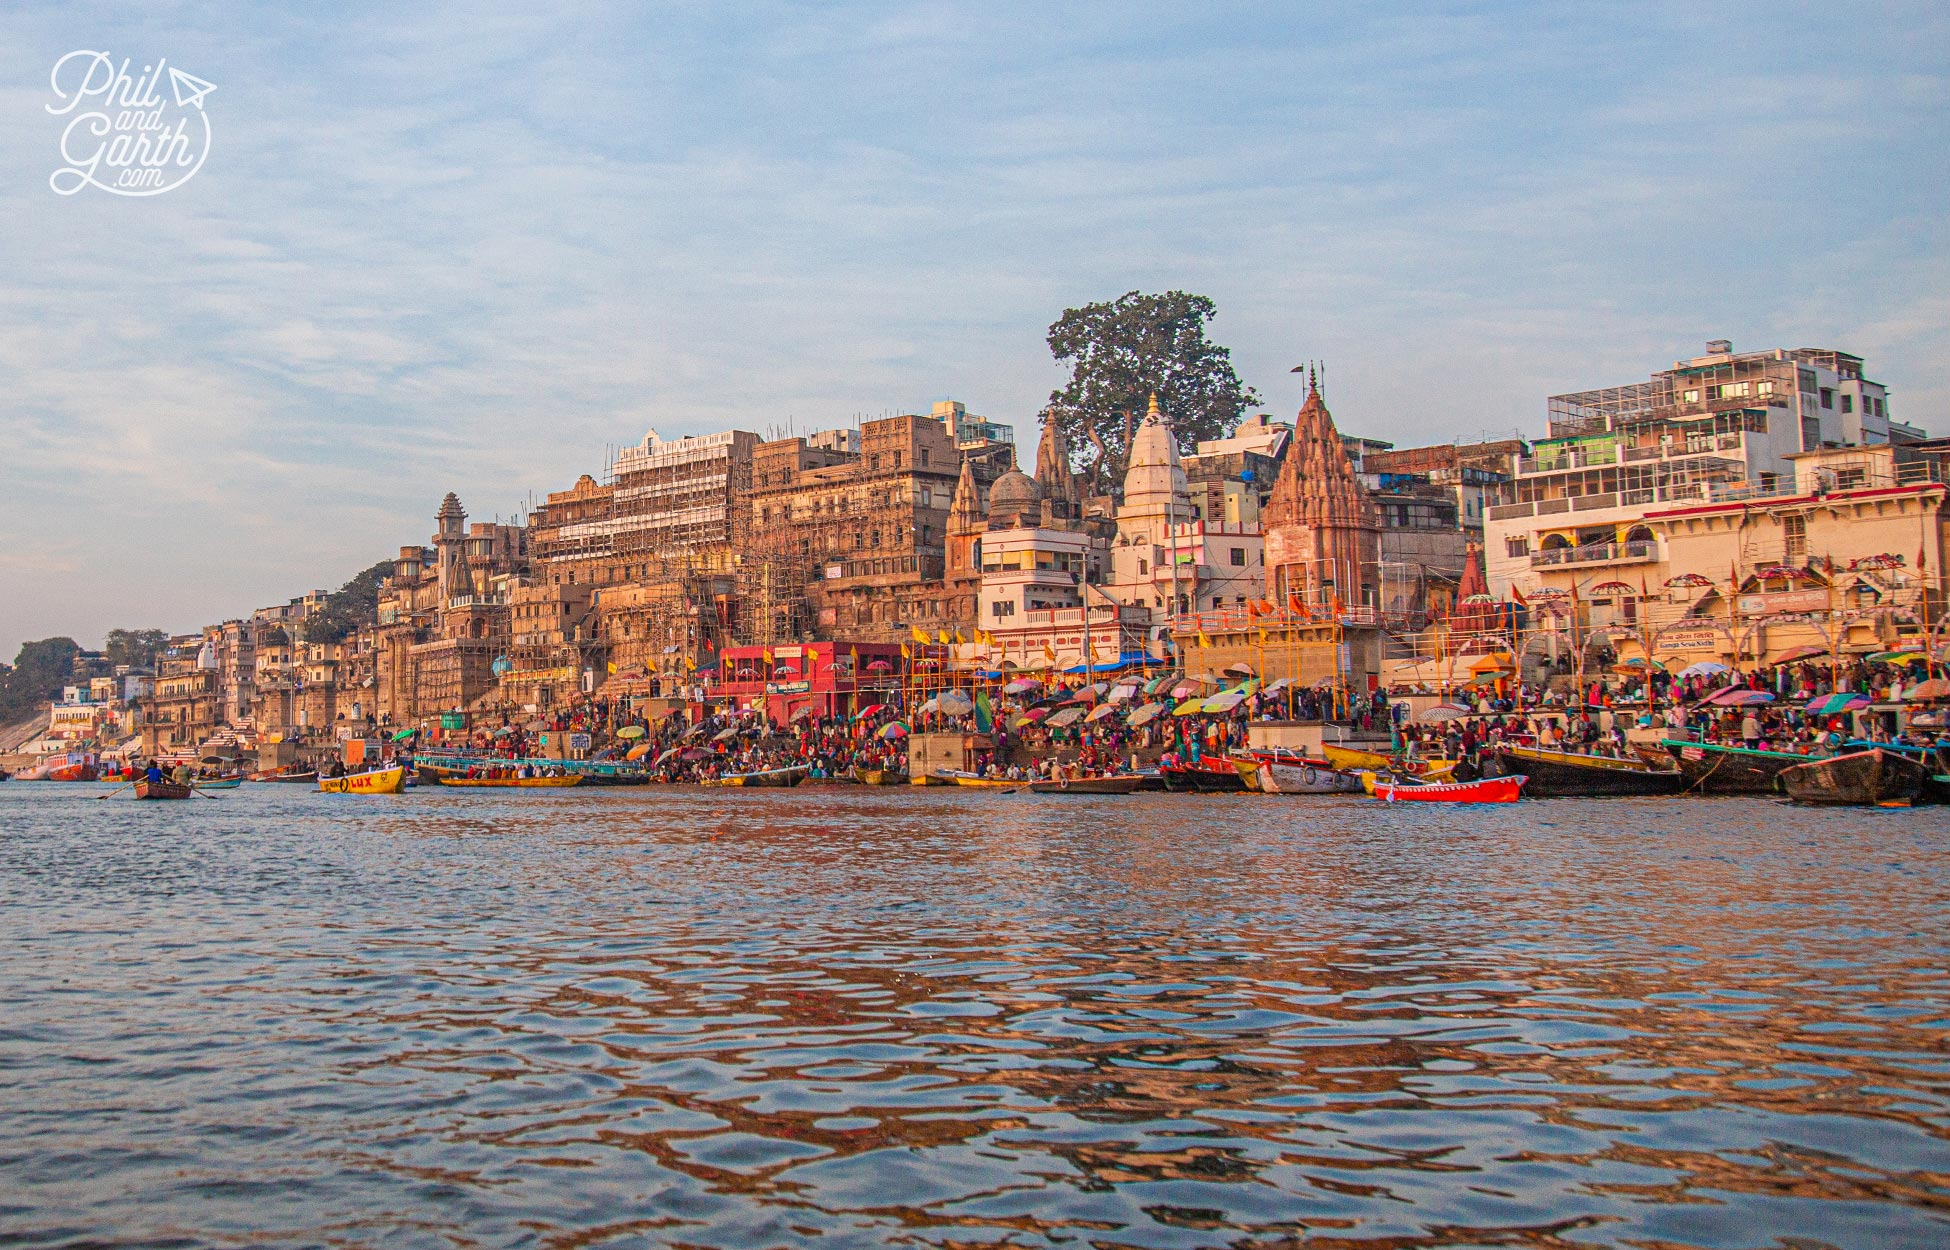 Known as the 'city of temples' - Varanasi has over 23,000 temples